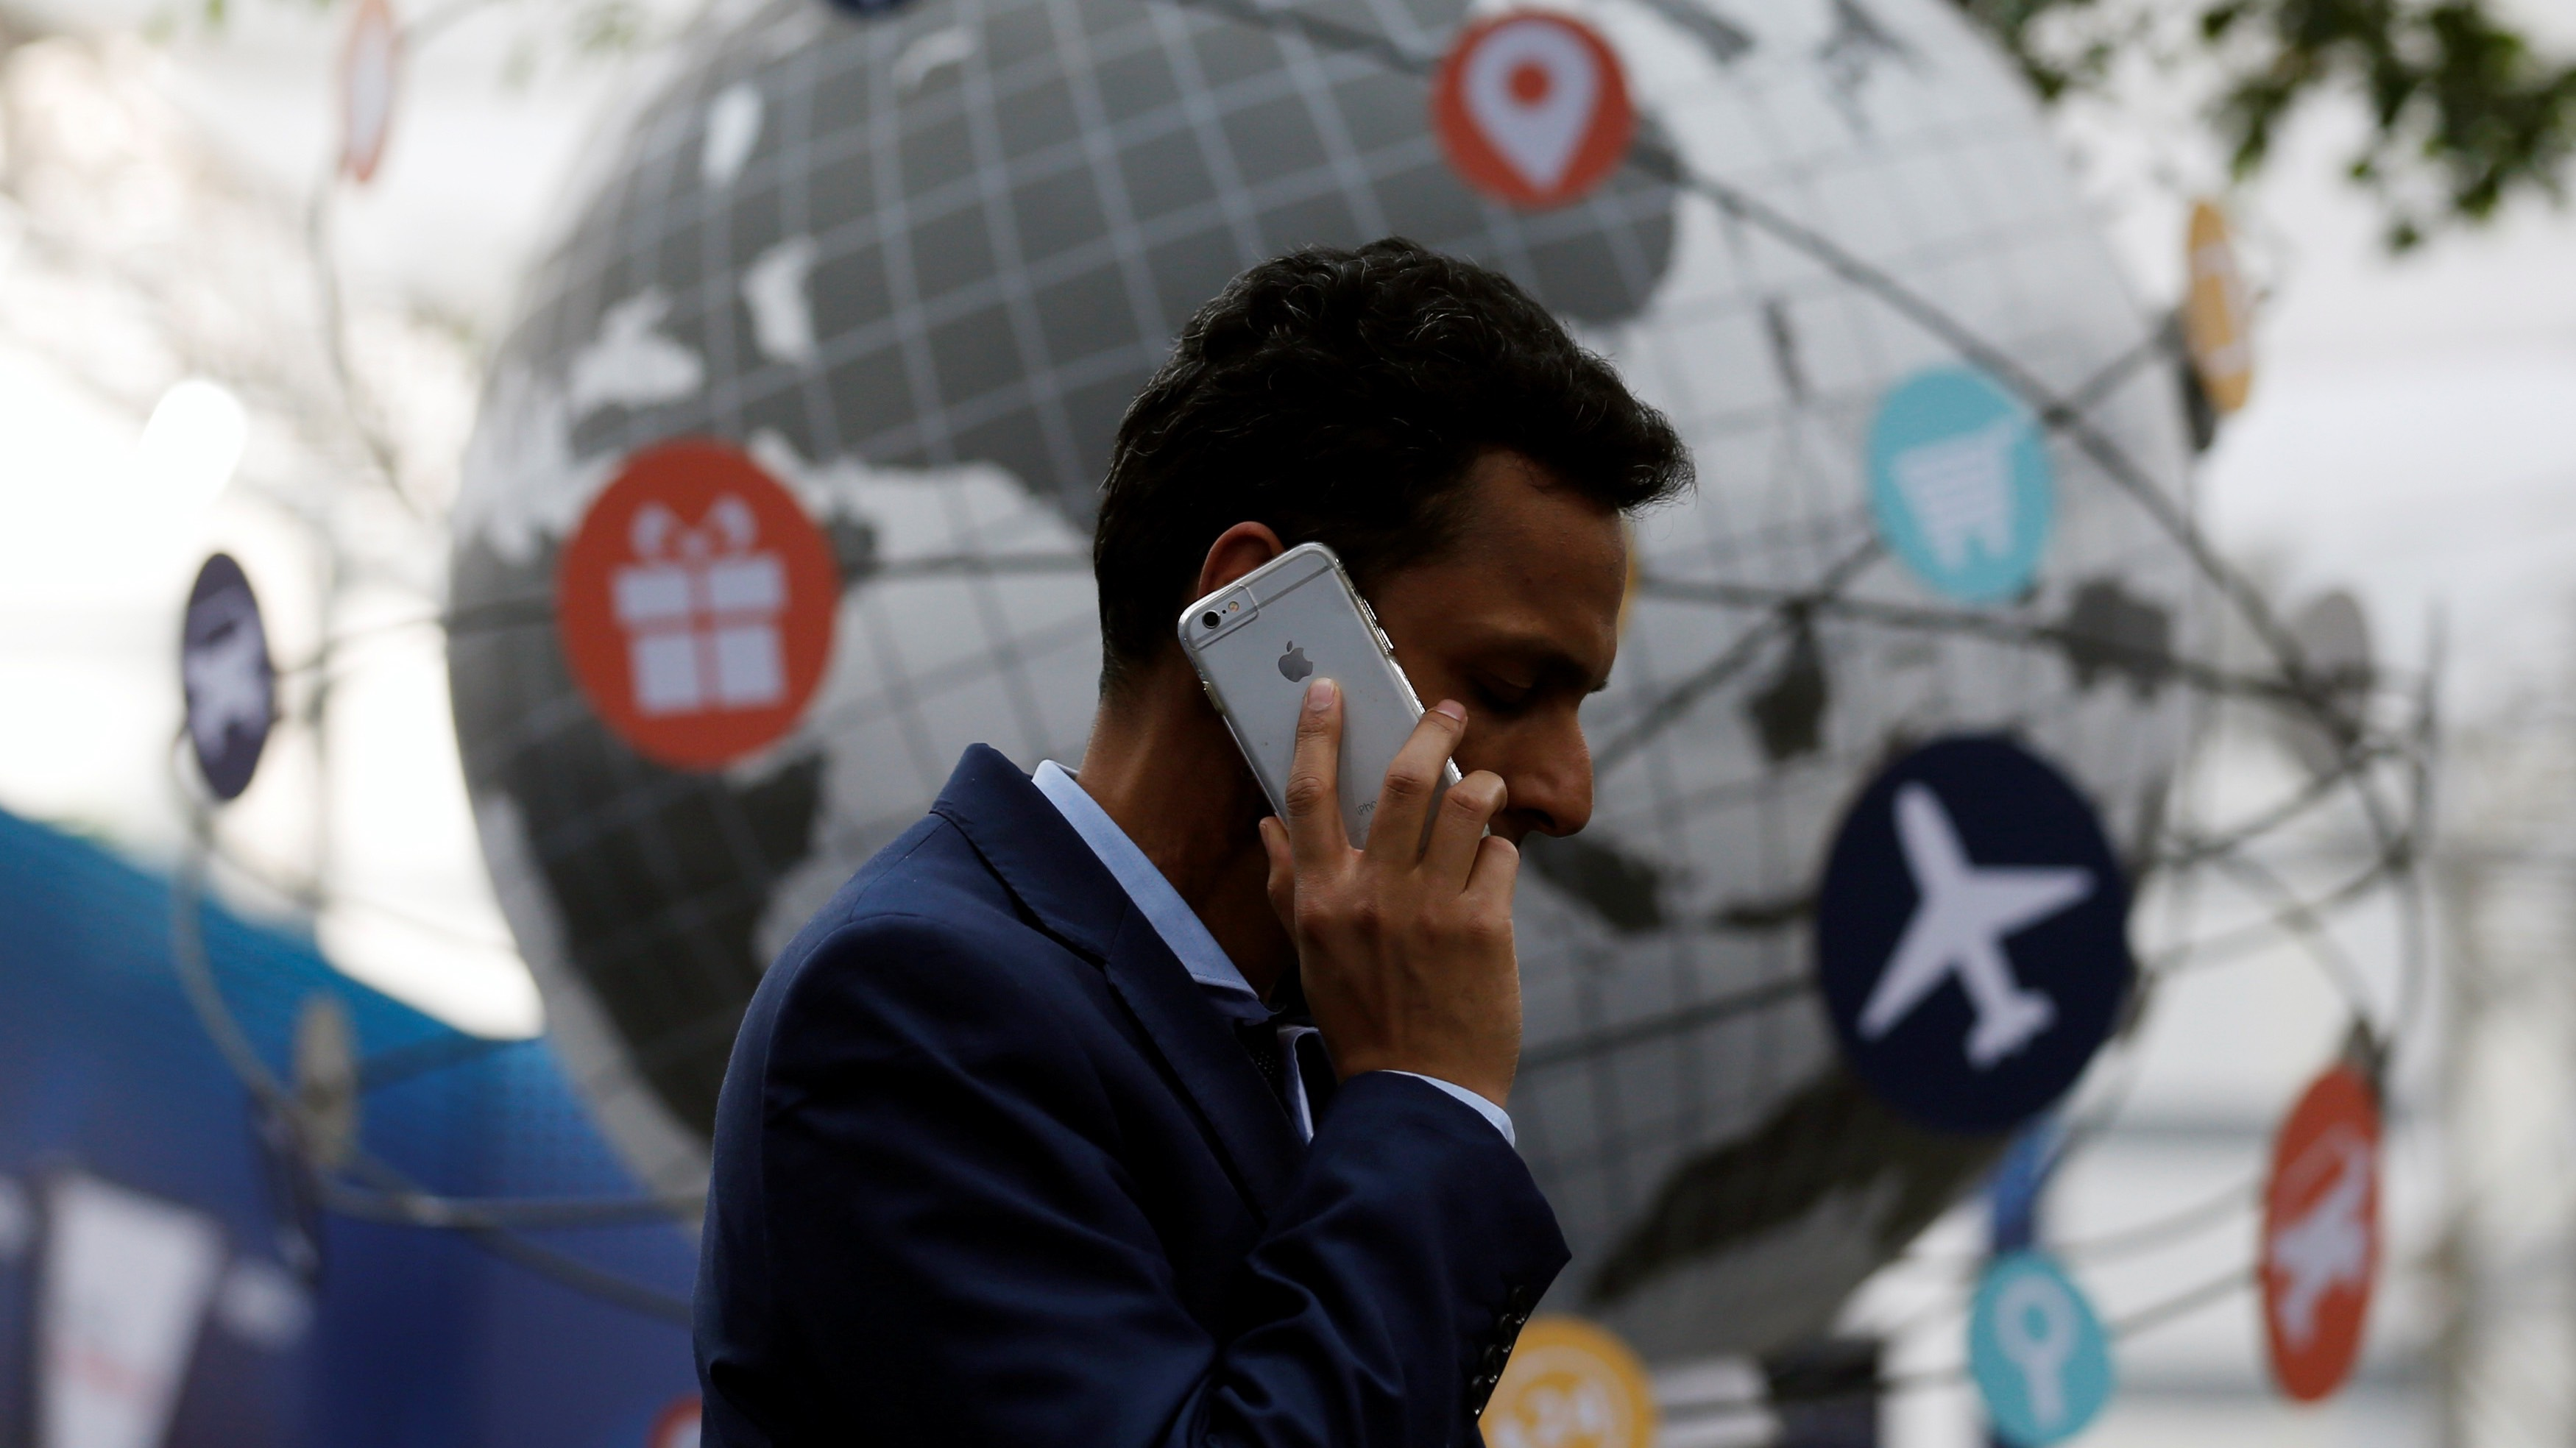 A delegate speaks on the phone as he attends the National Association of Software and Services Companies (NASSCOM) India Leadership Forum in Mumbai, India February 16, 2017. REUTERS/Danish Siddiqui - RTSYWWD